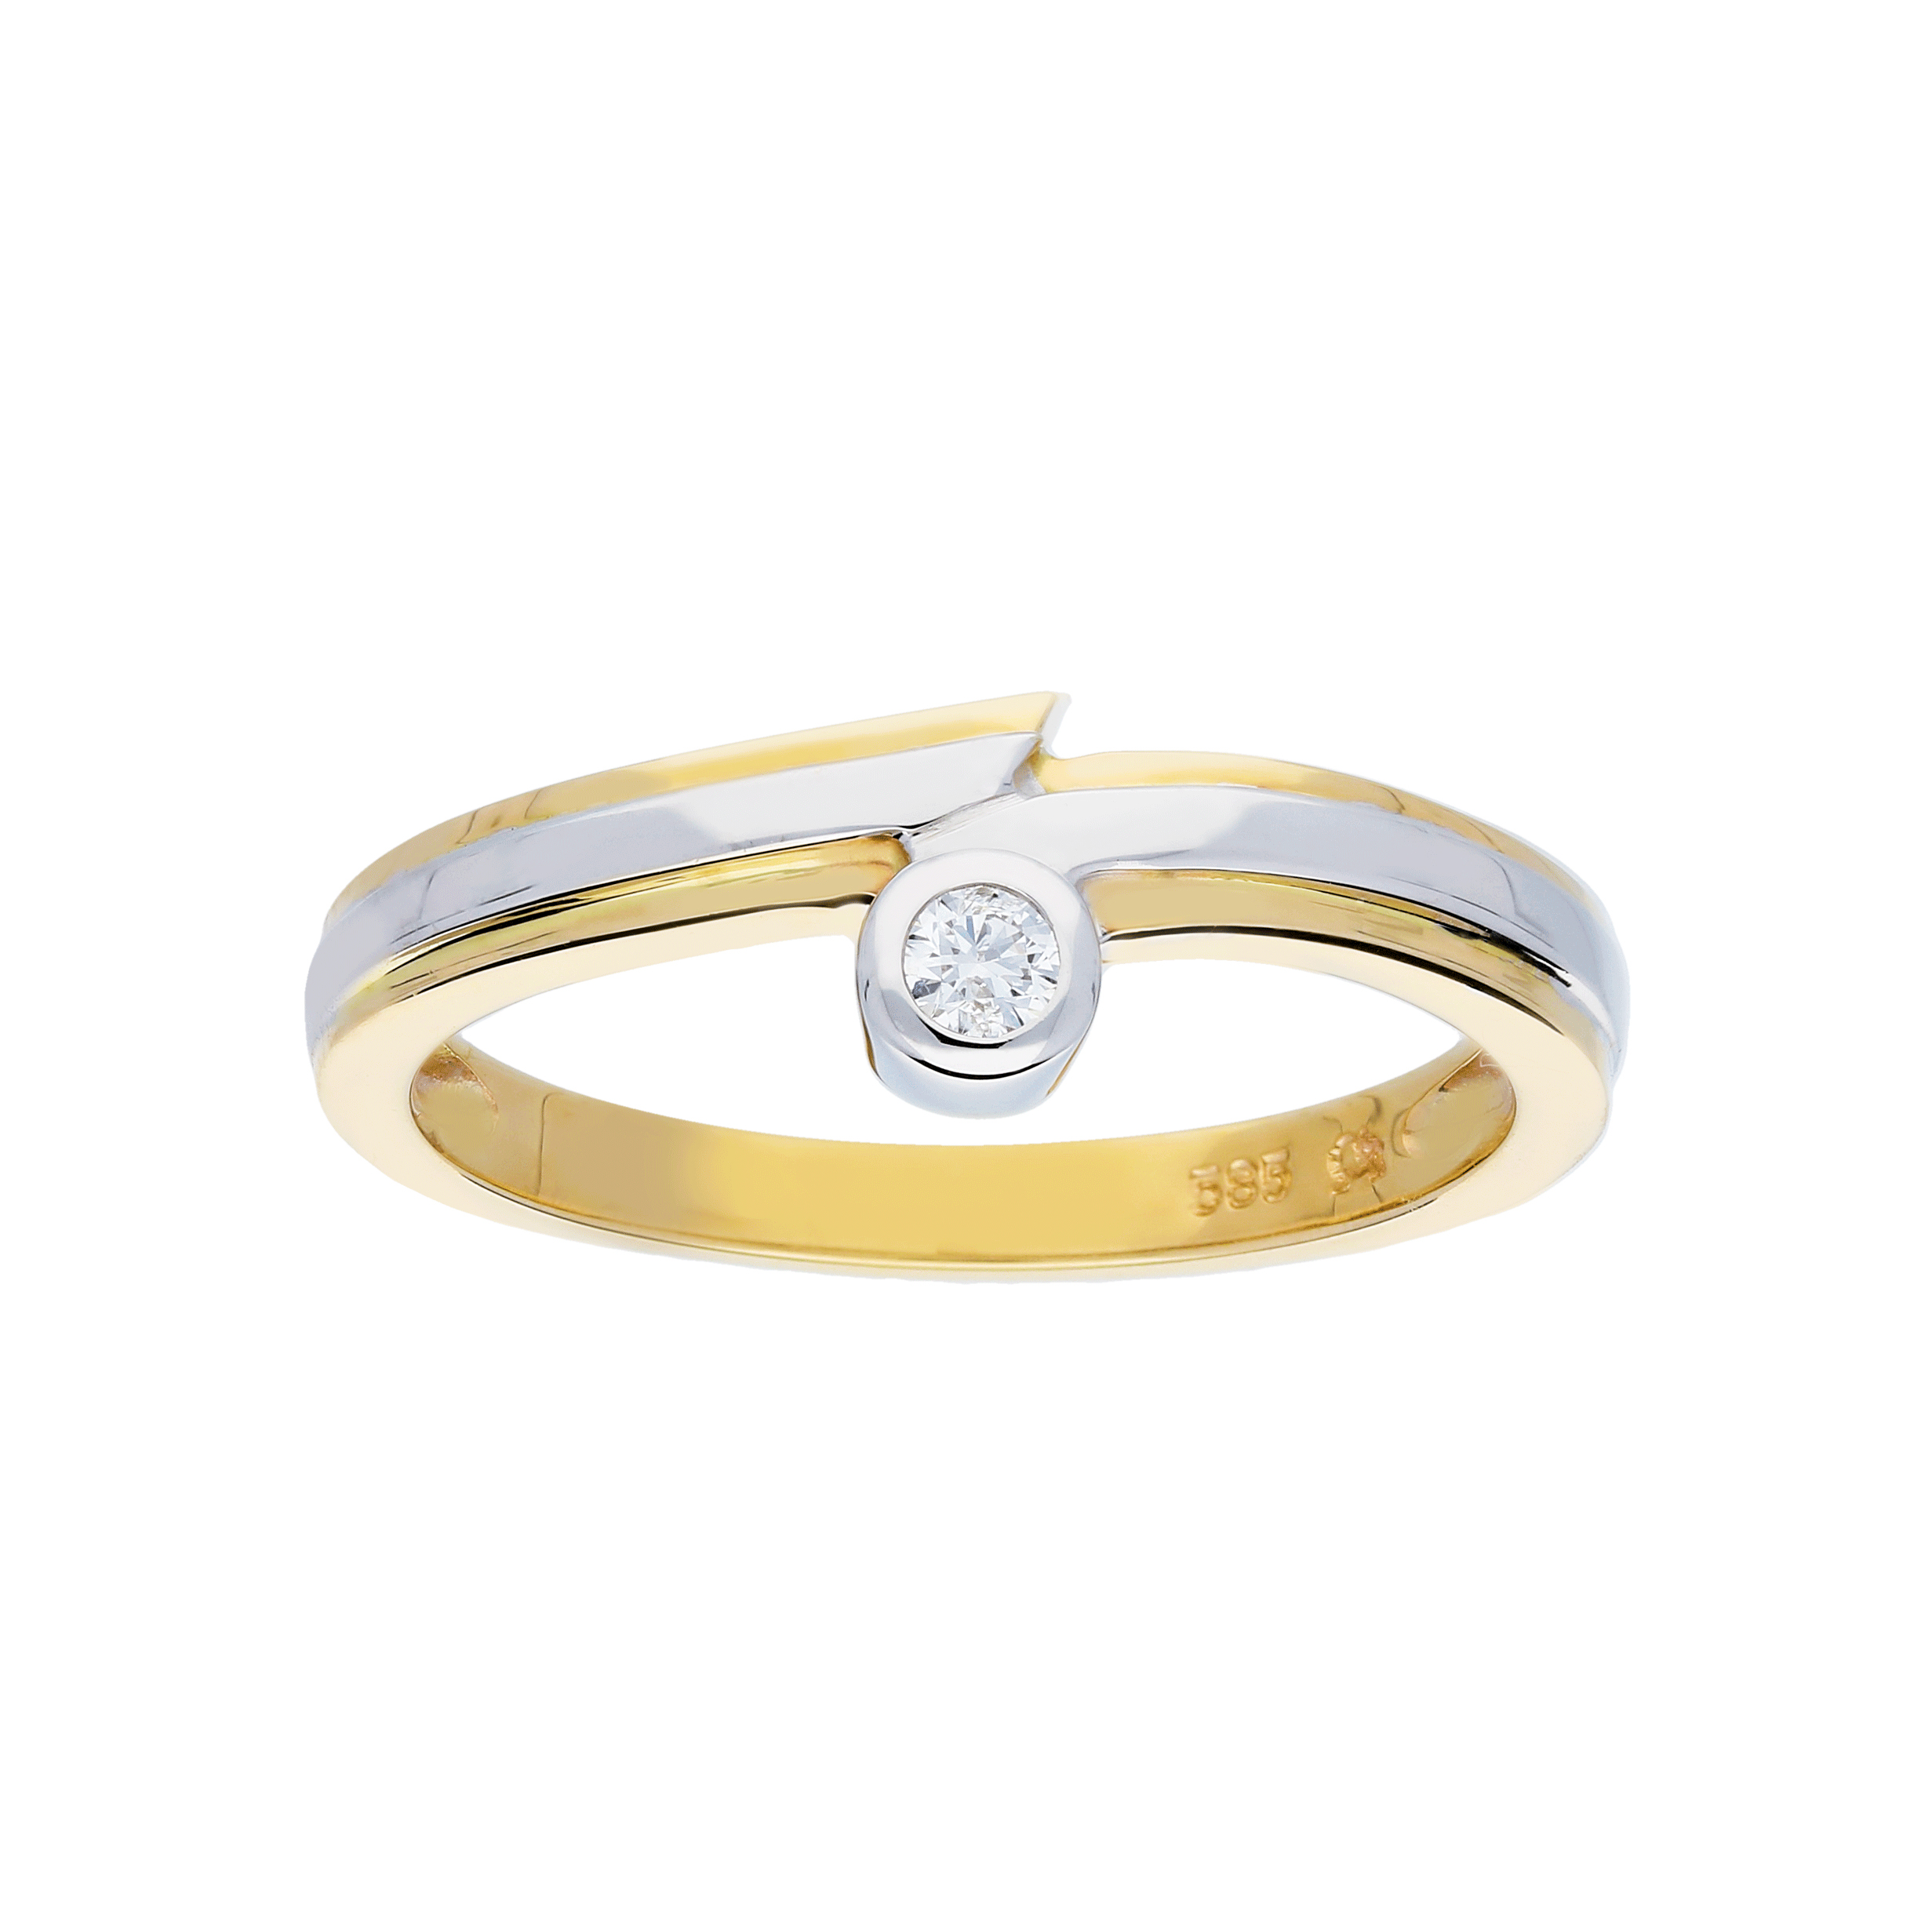 Glow Gouden Ring Bicolor Glanzend Diamant 1 0.055ct G si 214.5225.50